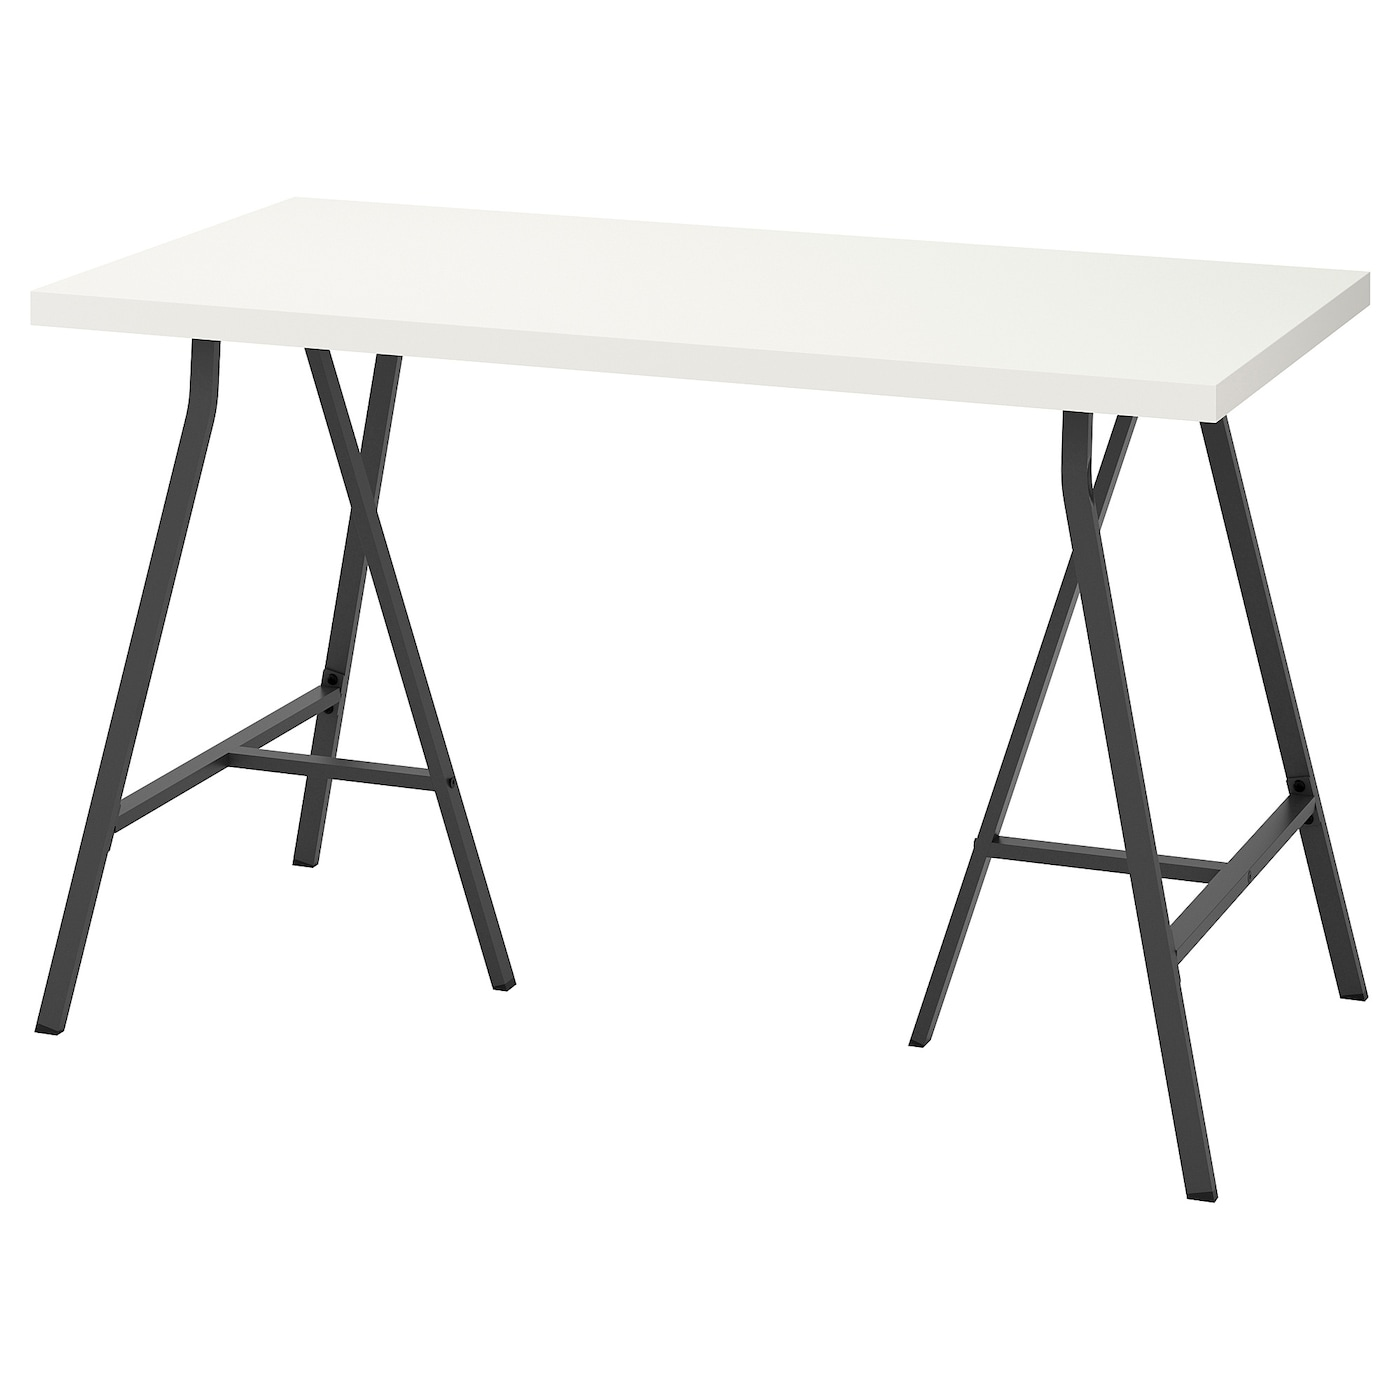 Picture of: Table Tops Table Legs Trestles Table Bar System Ikea